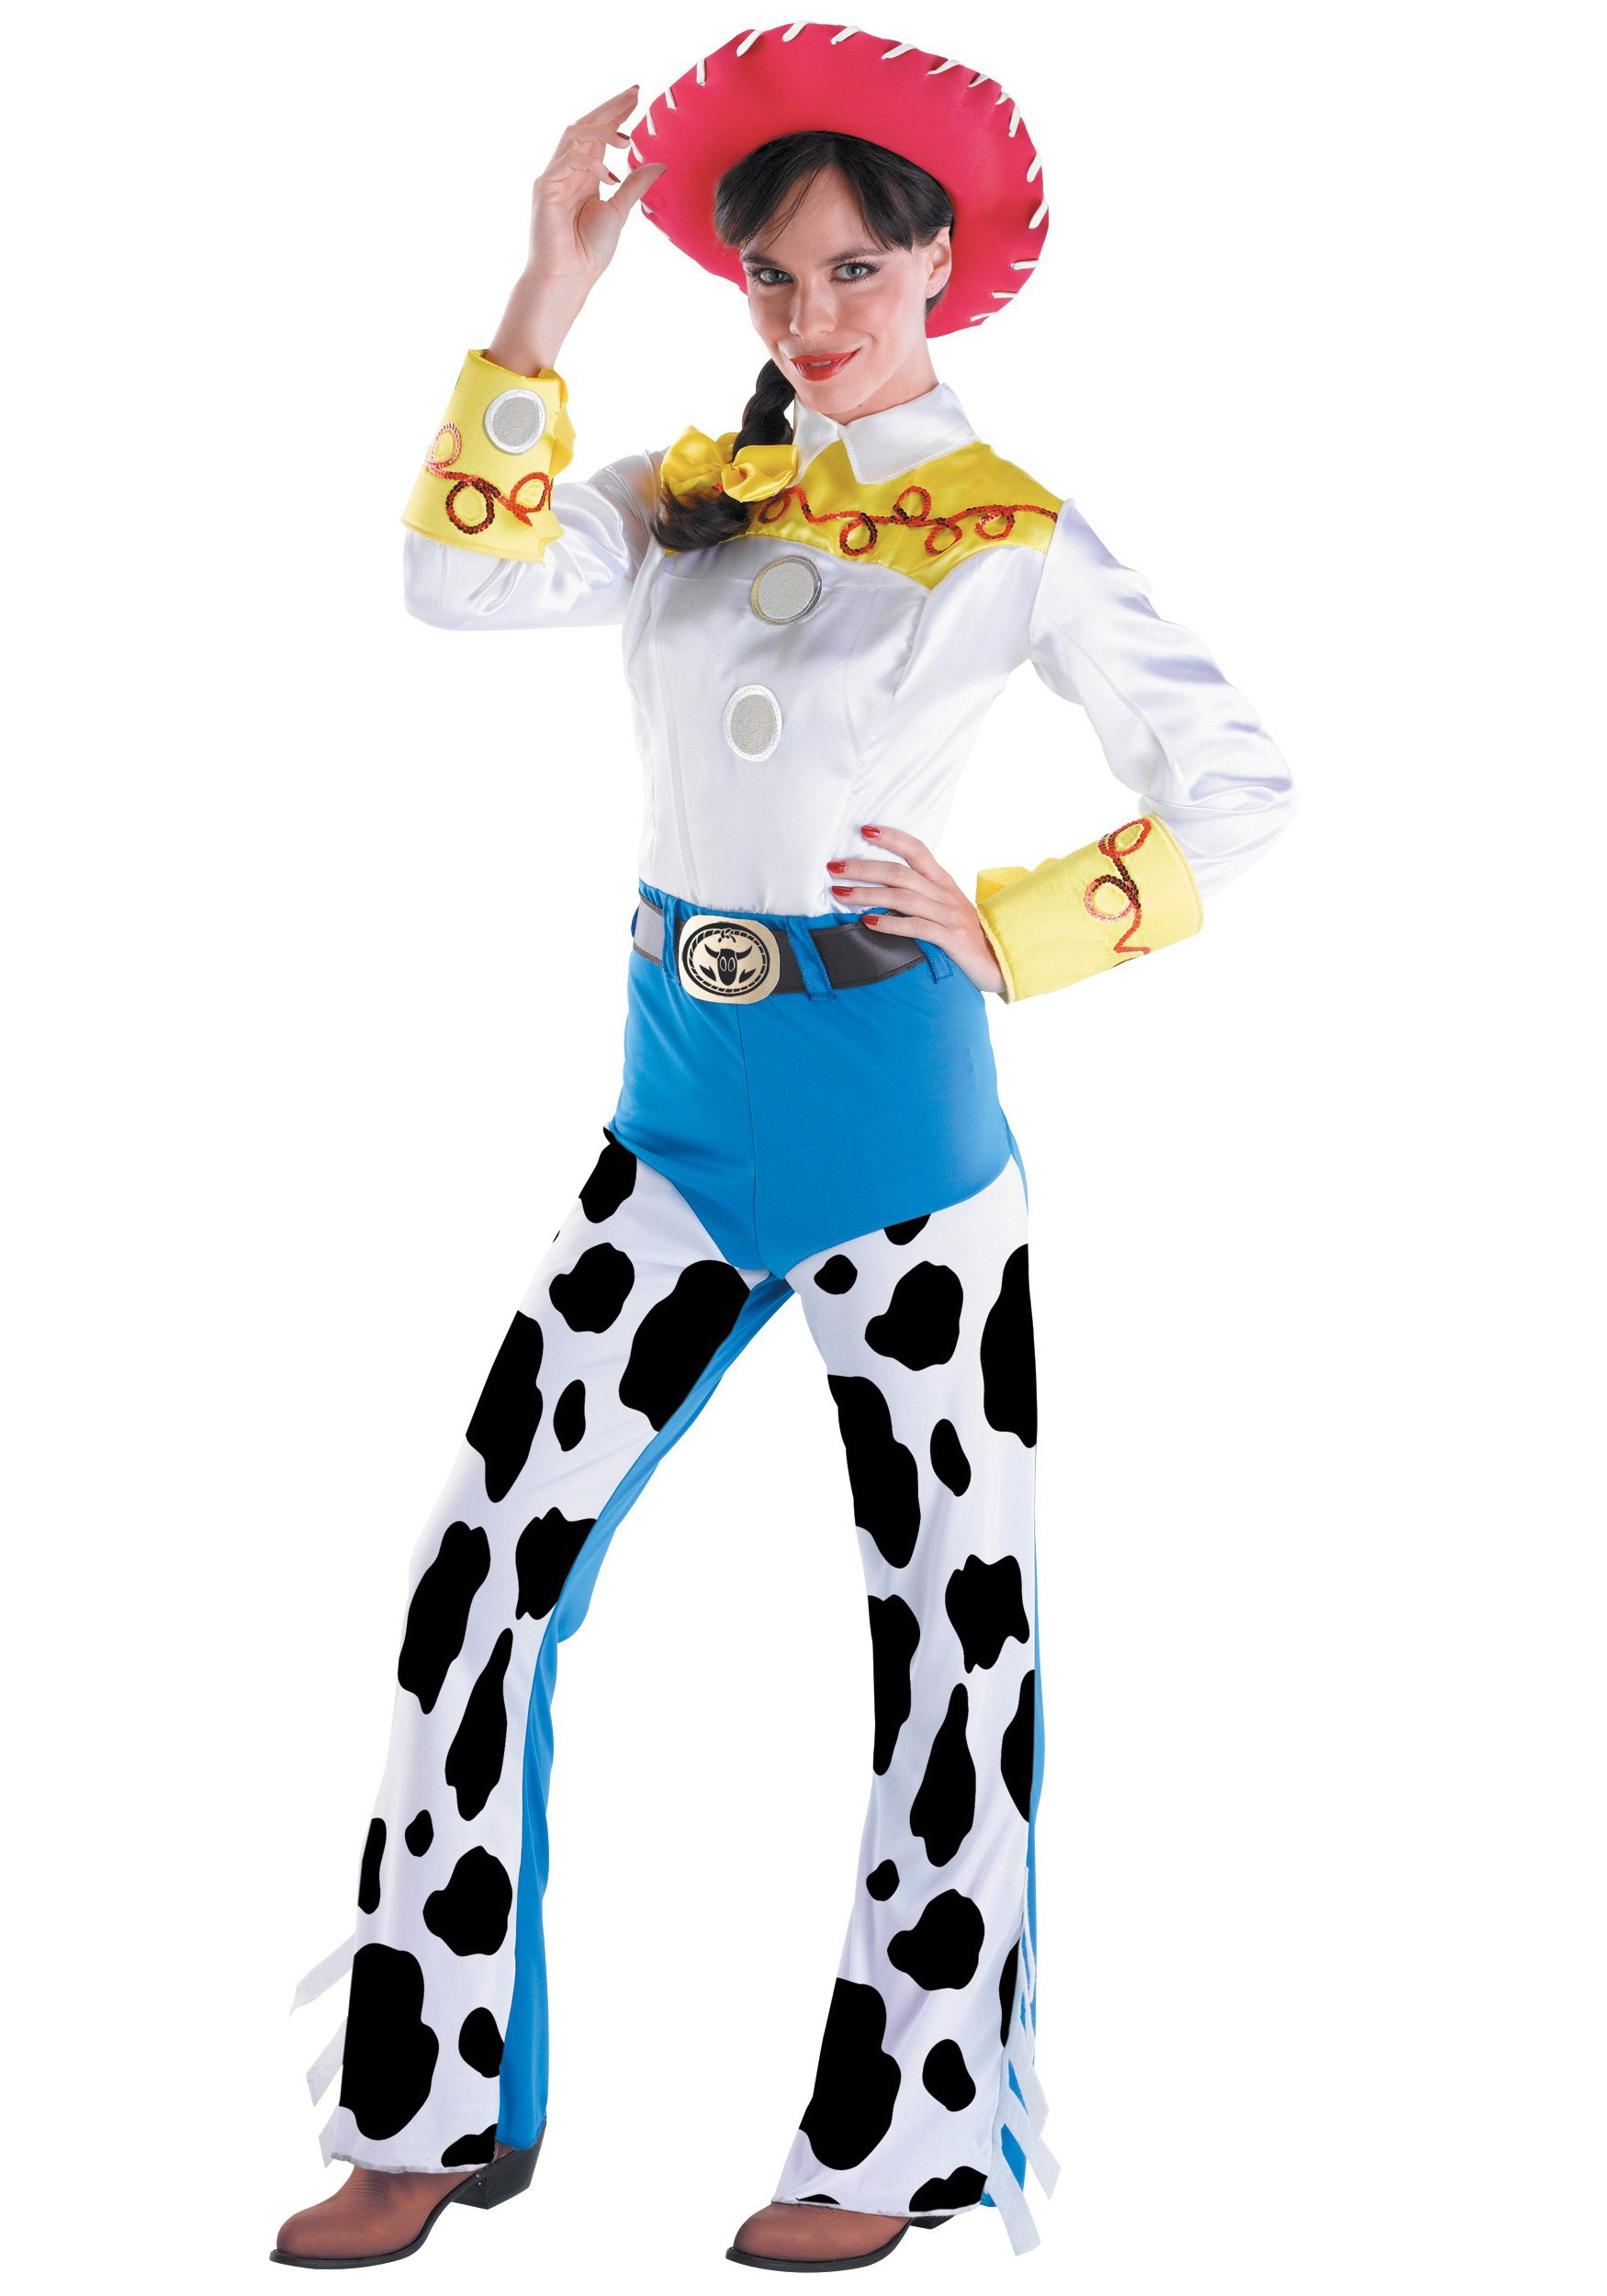 Toy Story Jessie Costume for Women